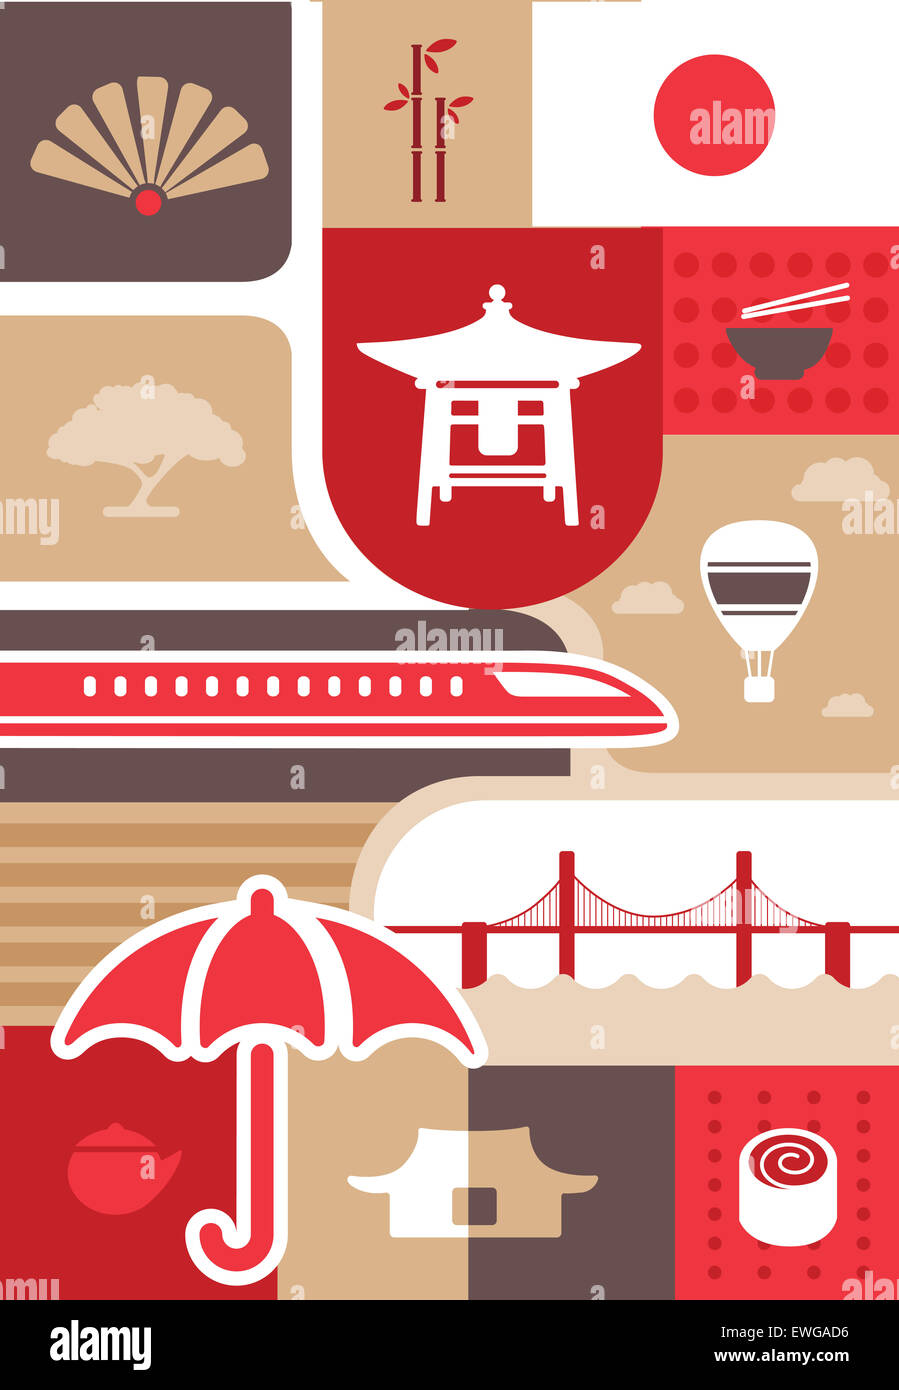 Illustrative Collage Japanese Culture Symbols Stock Photo 84567314